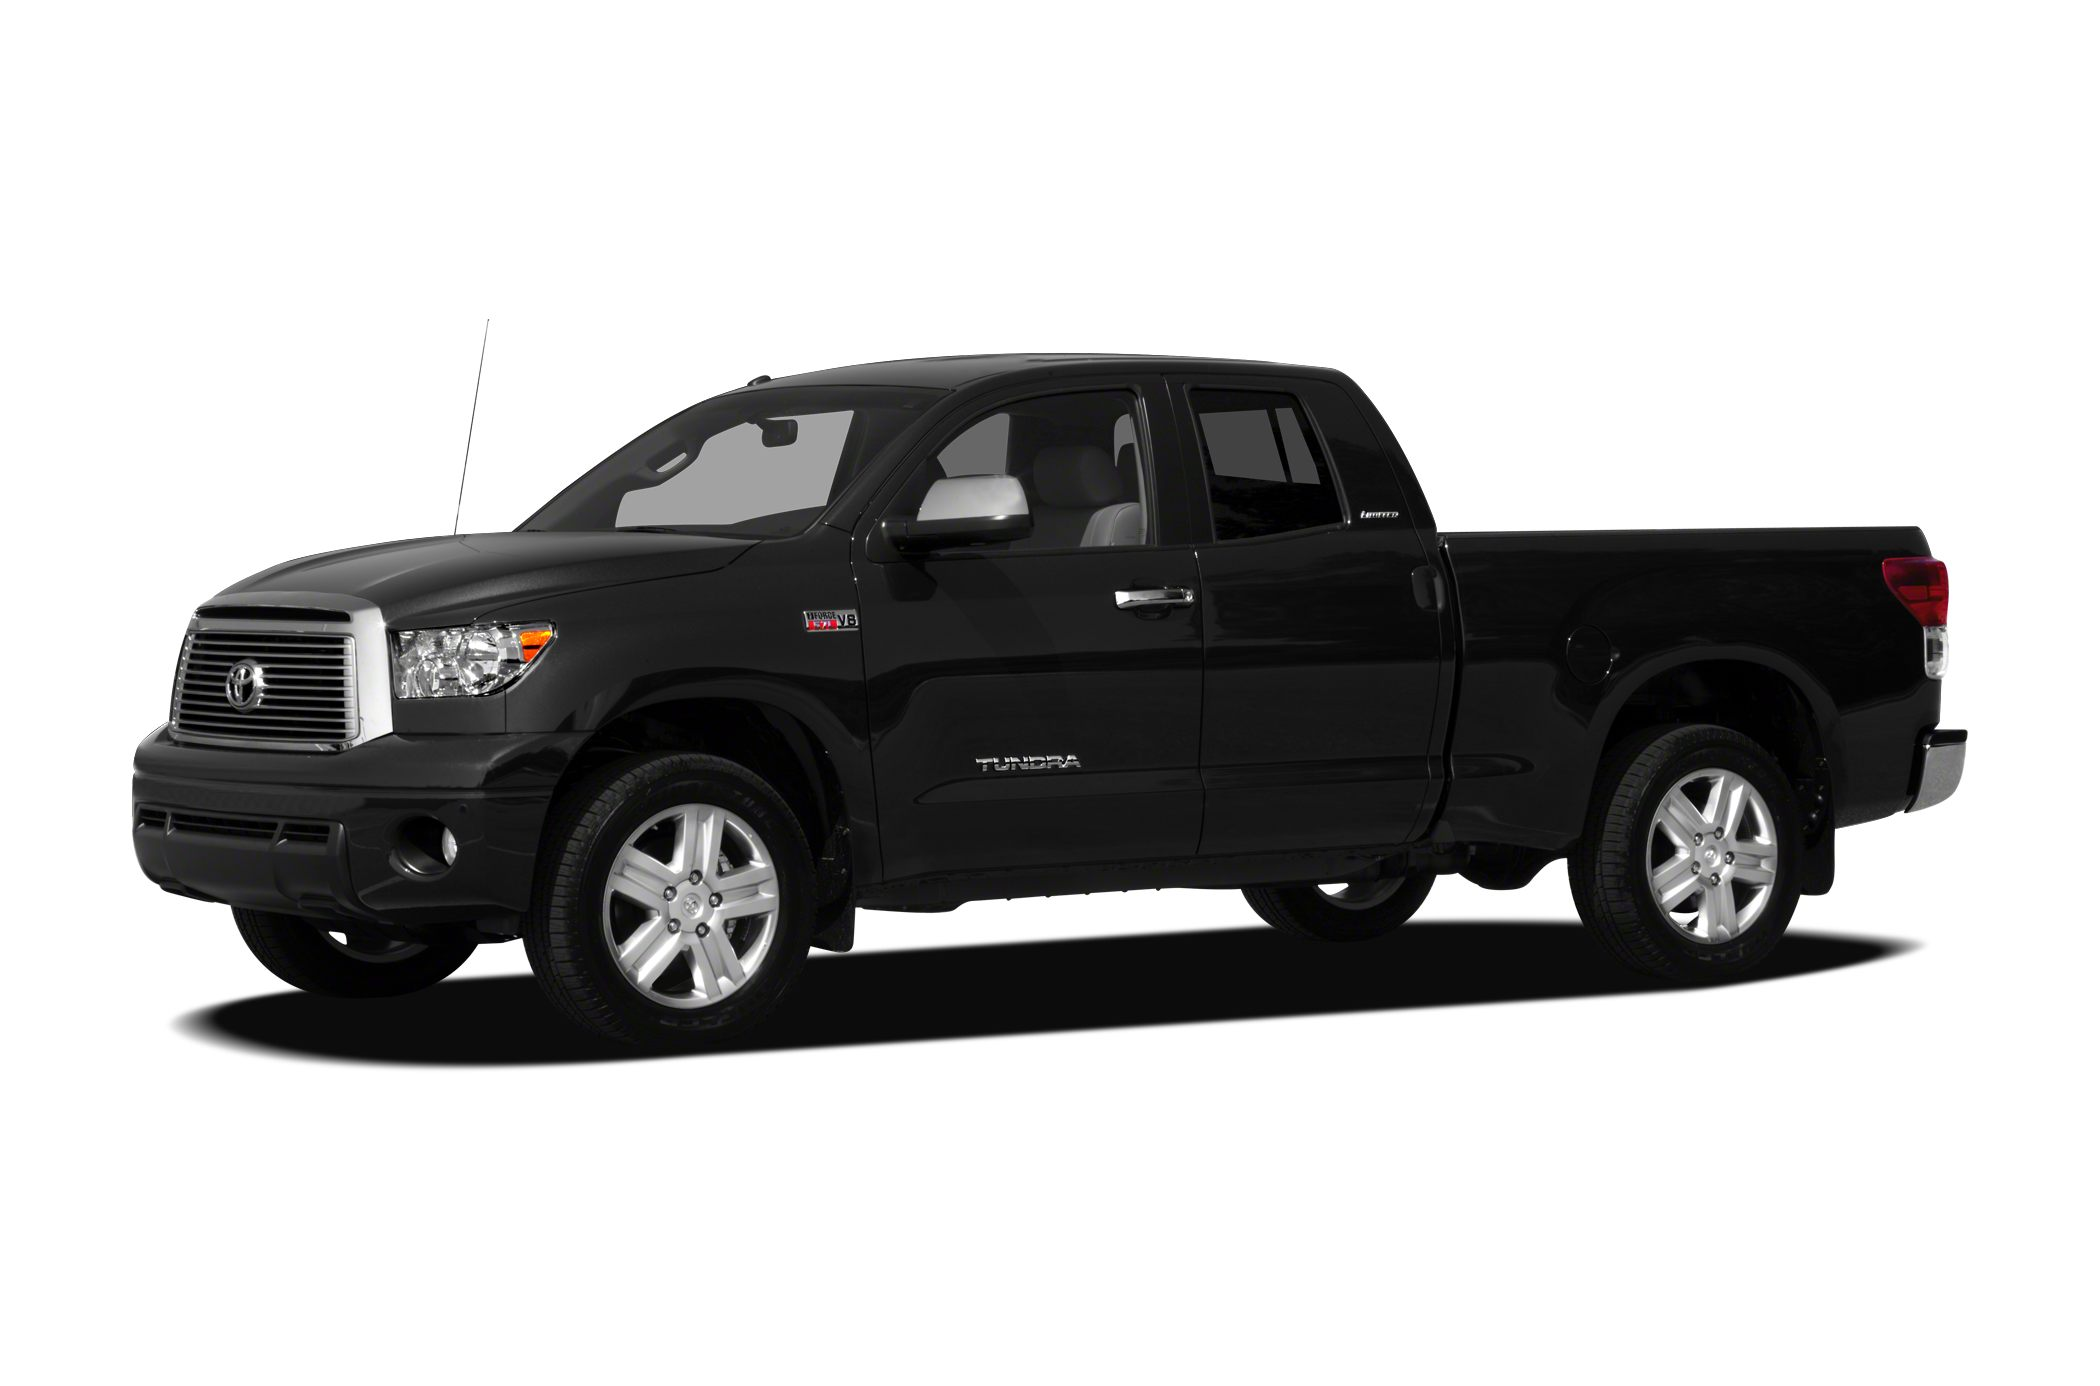 2012 Toyota Tundra Grade GREAT MILES 41785 SILVER SKY METALLIC exterior and GRAPHITE interior O